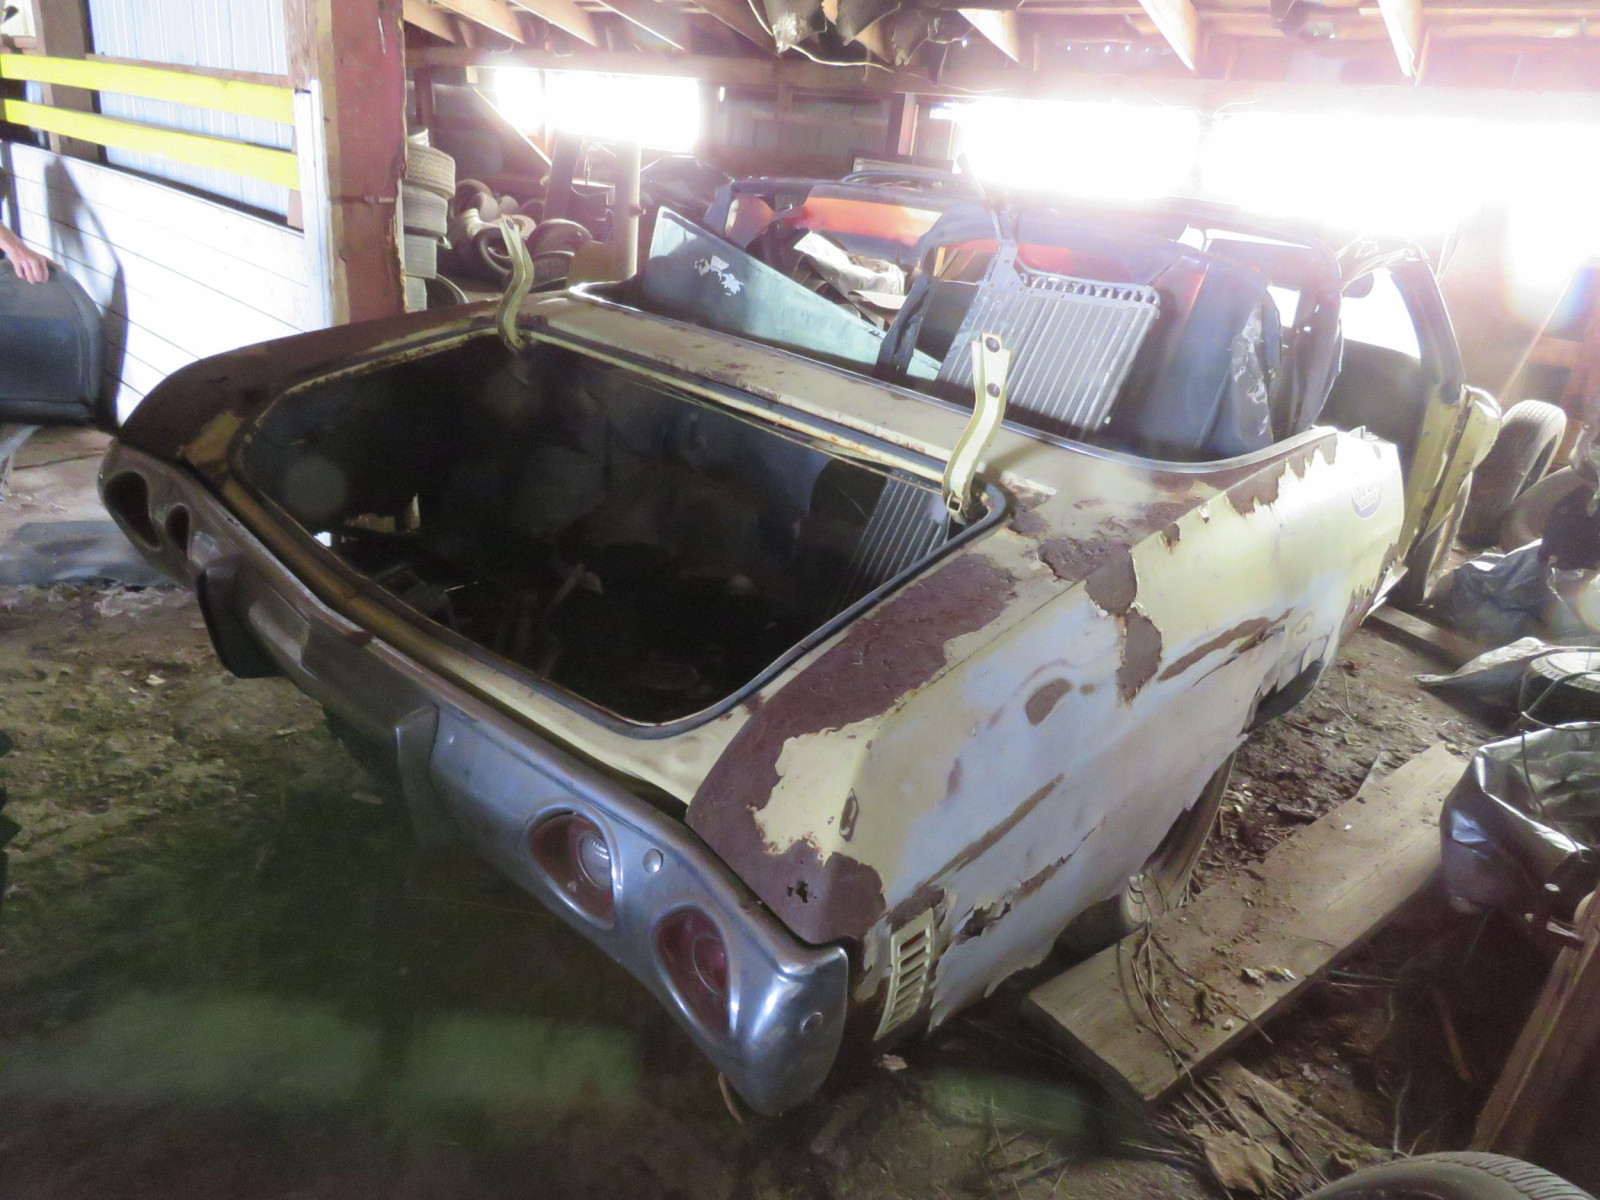 1972 Chevrolet Chevelle Convertible for Project or Parts - Image 6